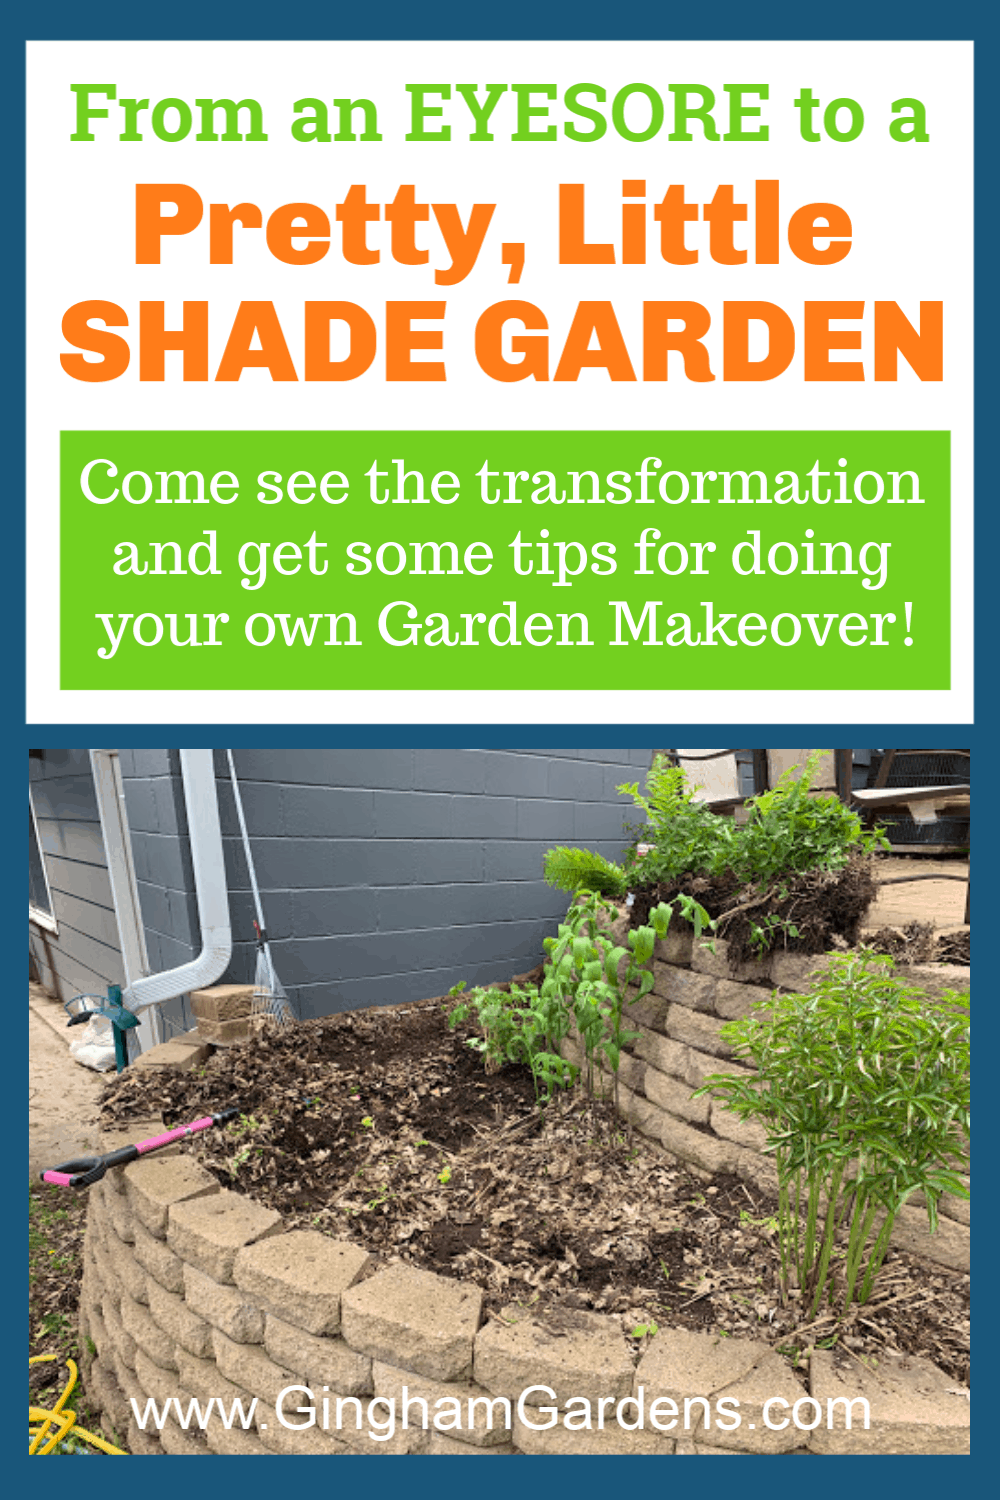 Image of an Ugly Garden with text overlay - From an eyesore to a pretty little shade garden